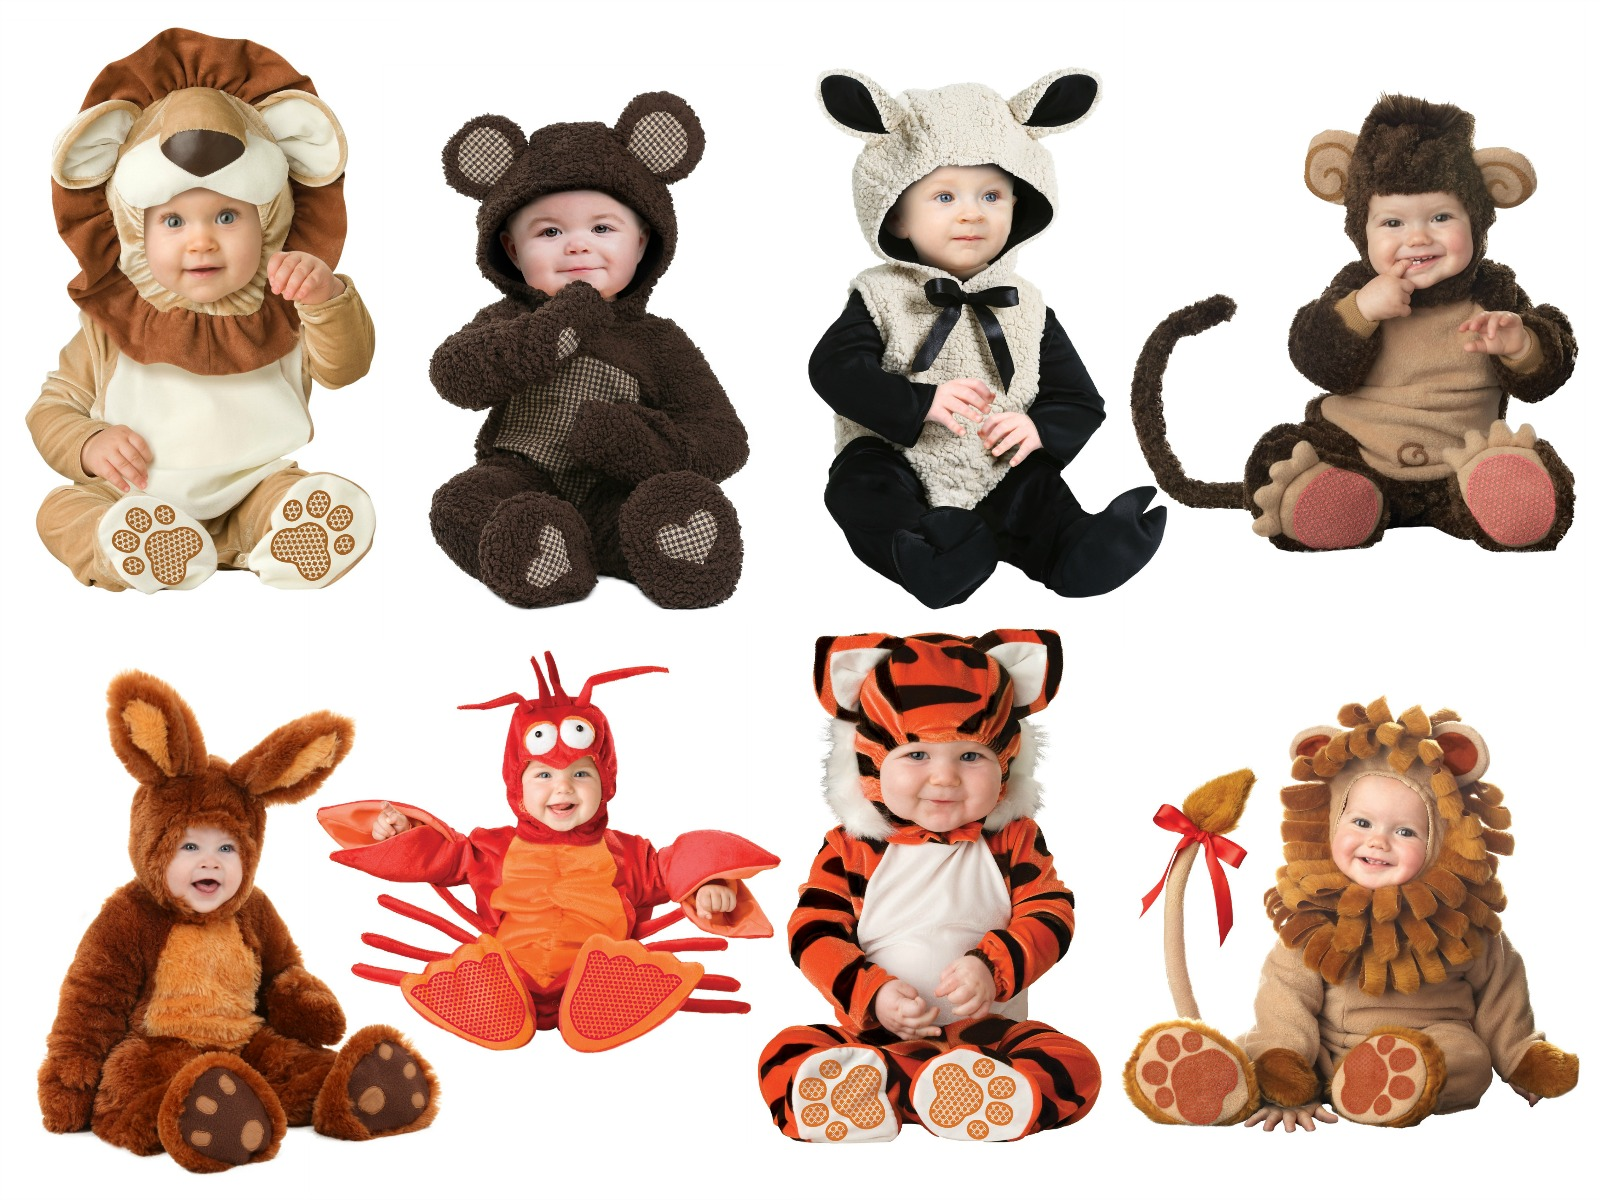 Baby Animal Costumes  sc 1 st  Halloween Costumes : animal costume for baby  - Germanpascual.Com